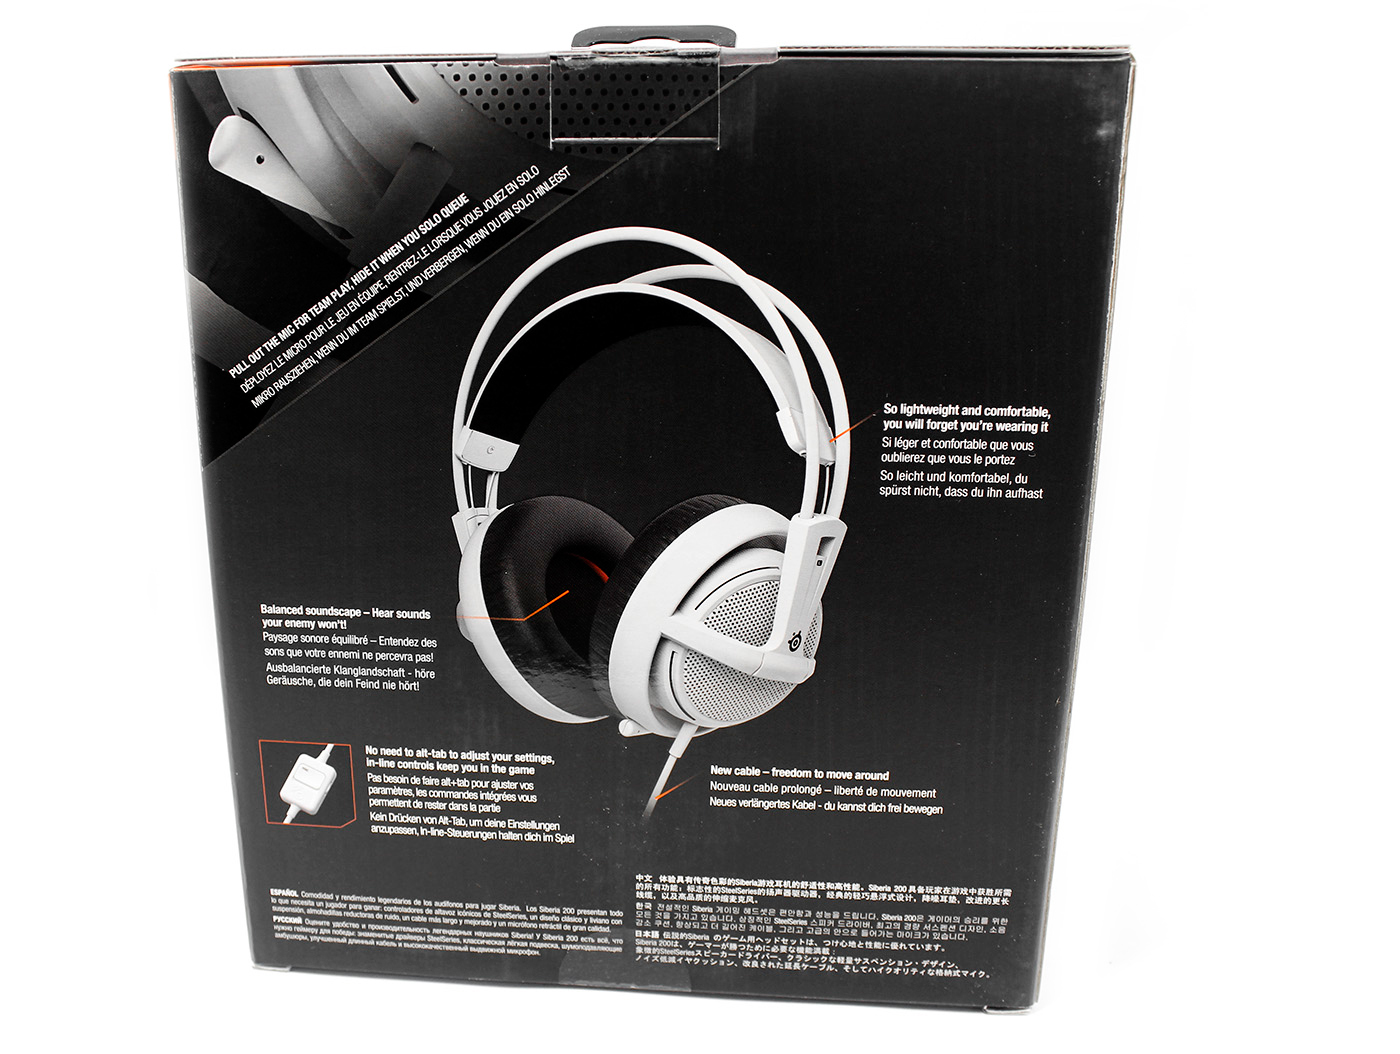 steelseries-siberia-200-box-rear.jpg